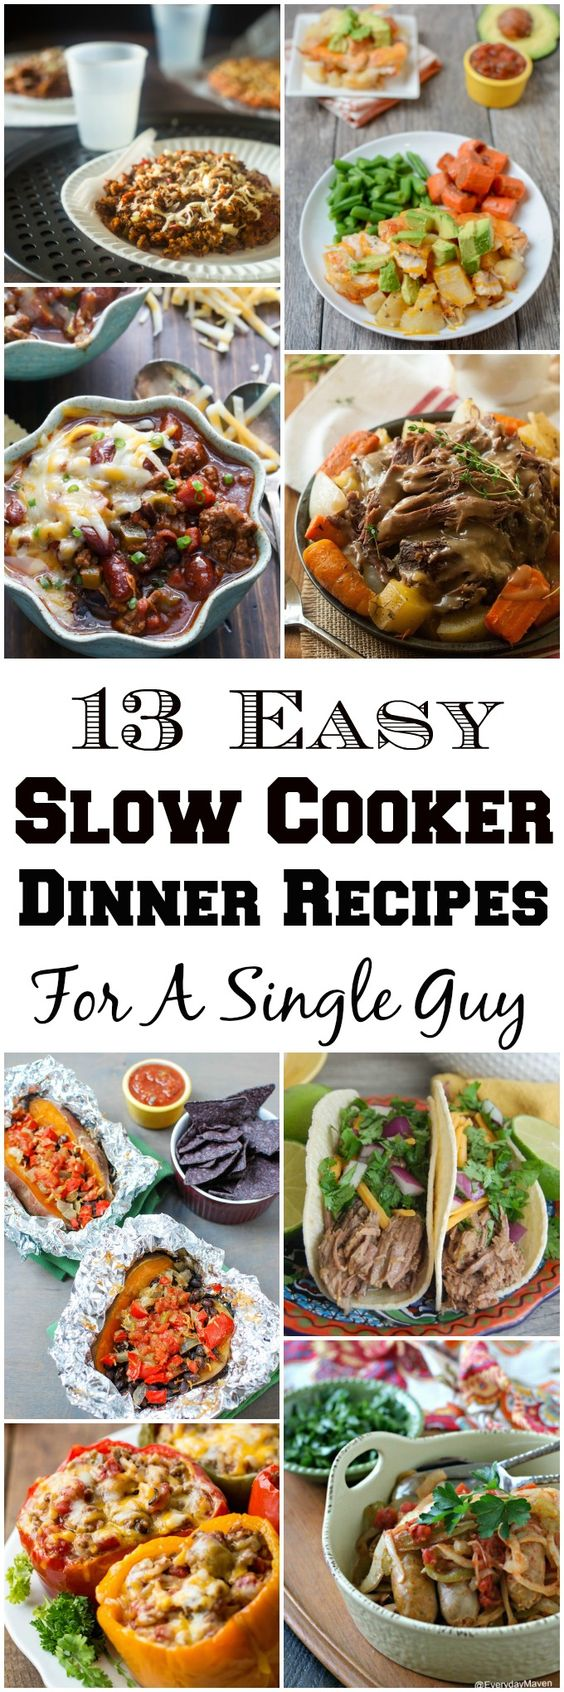 Easy slow cooker dinner recipes for a single guy single guys these easy slow cooker dinner recipes for a single guy are hearty nutritious and easy forumfinder Choice Image